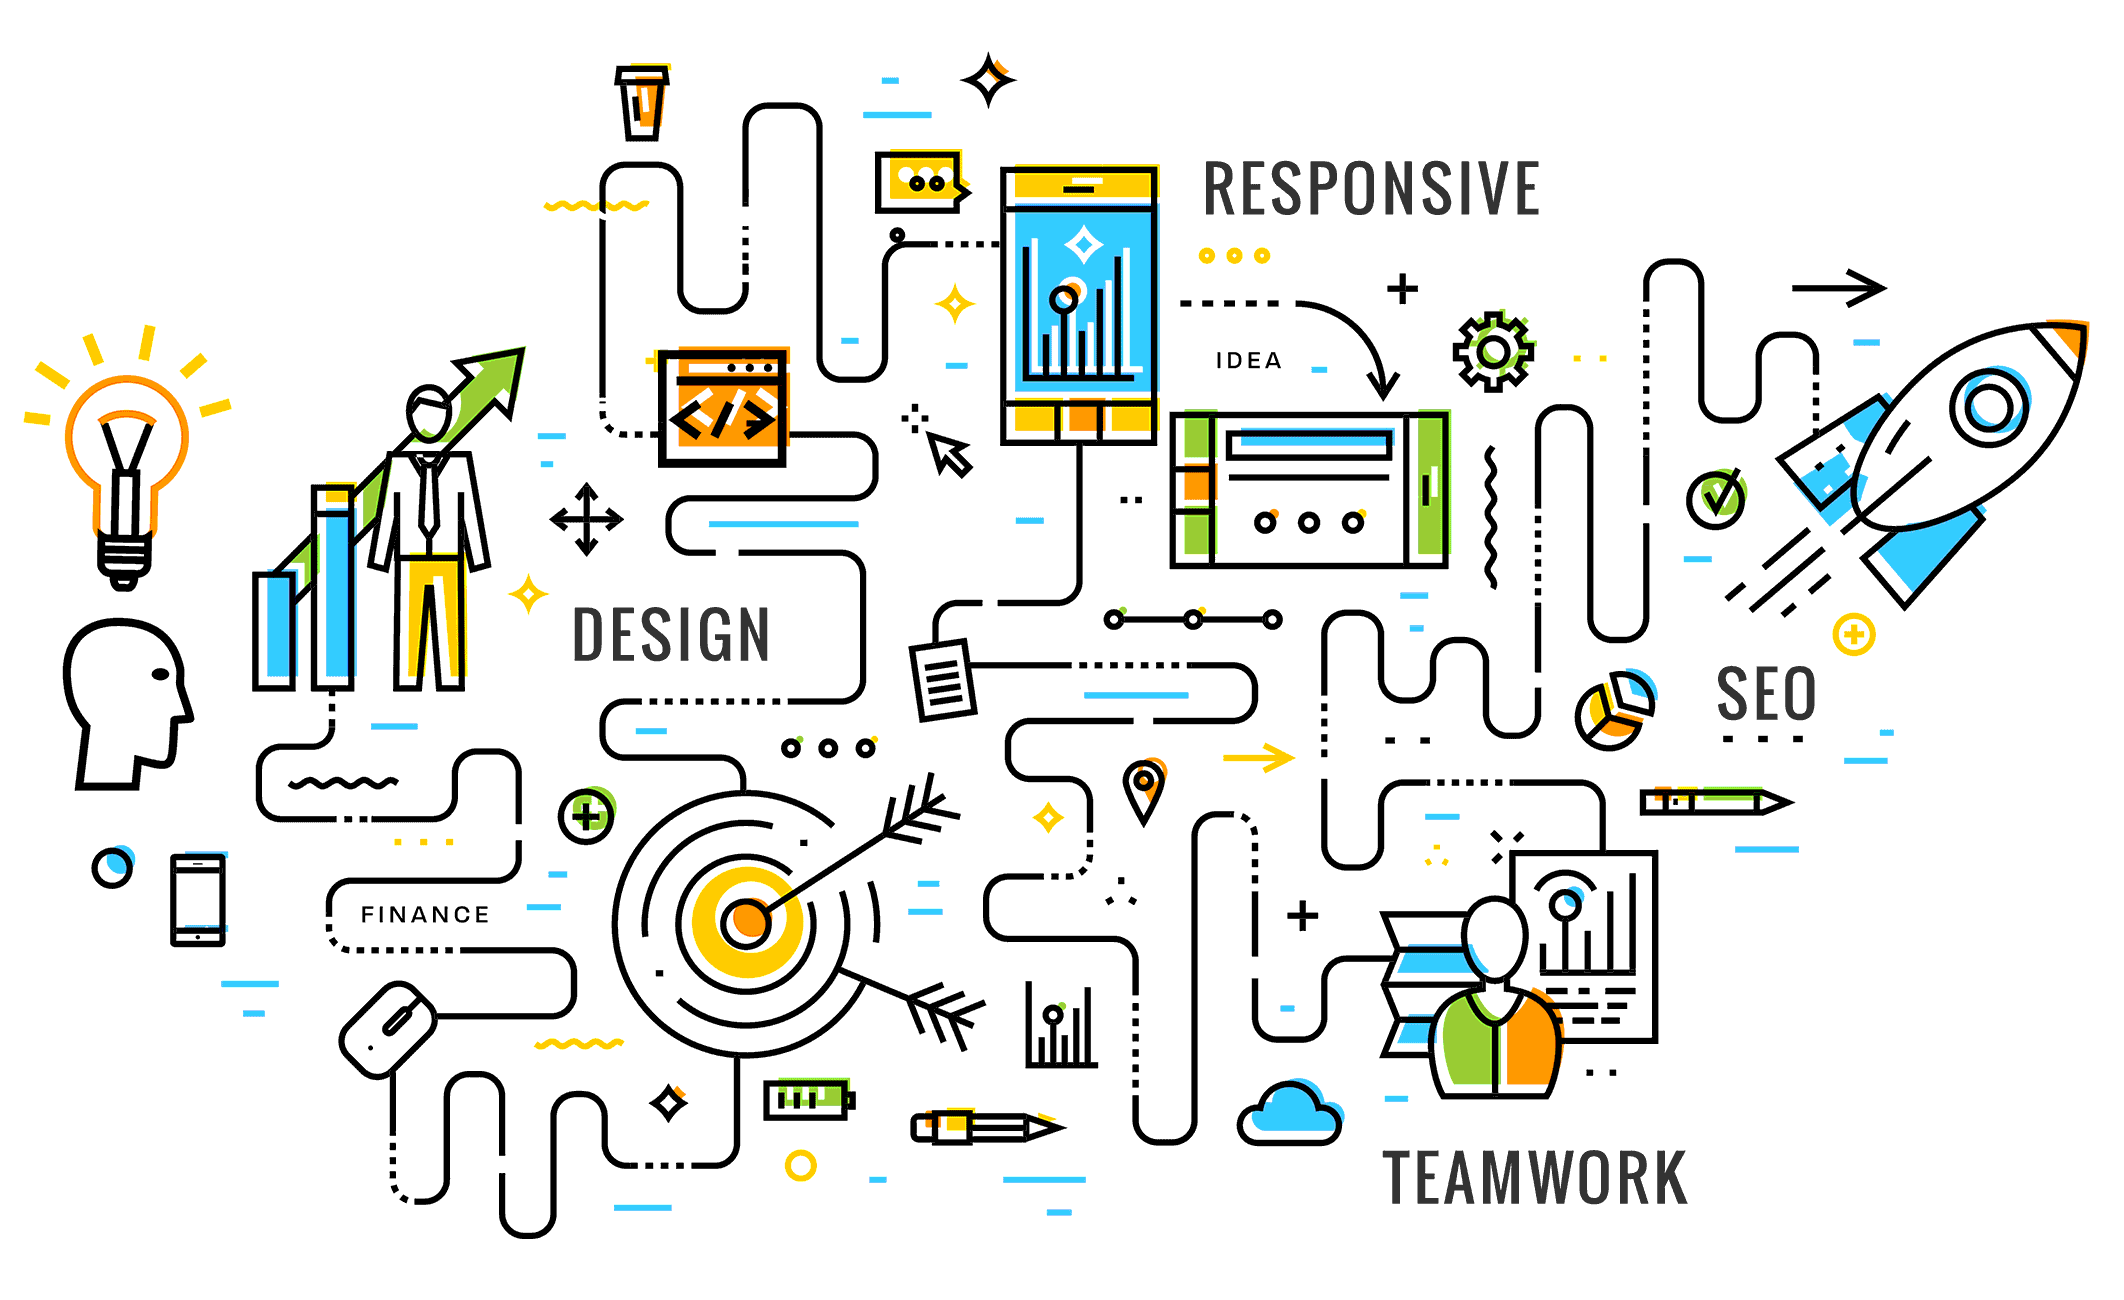 web-design-development-process-illustration